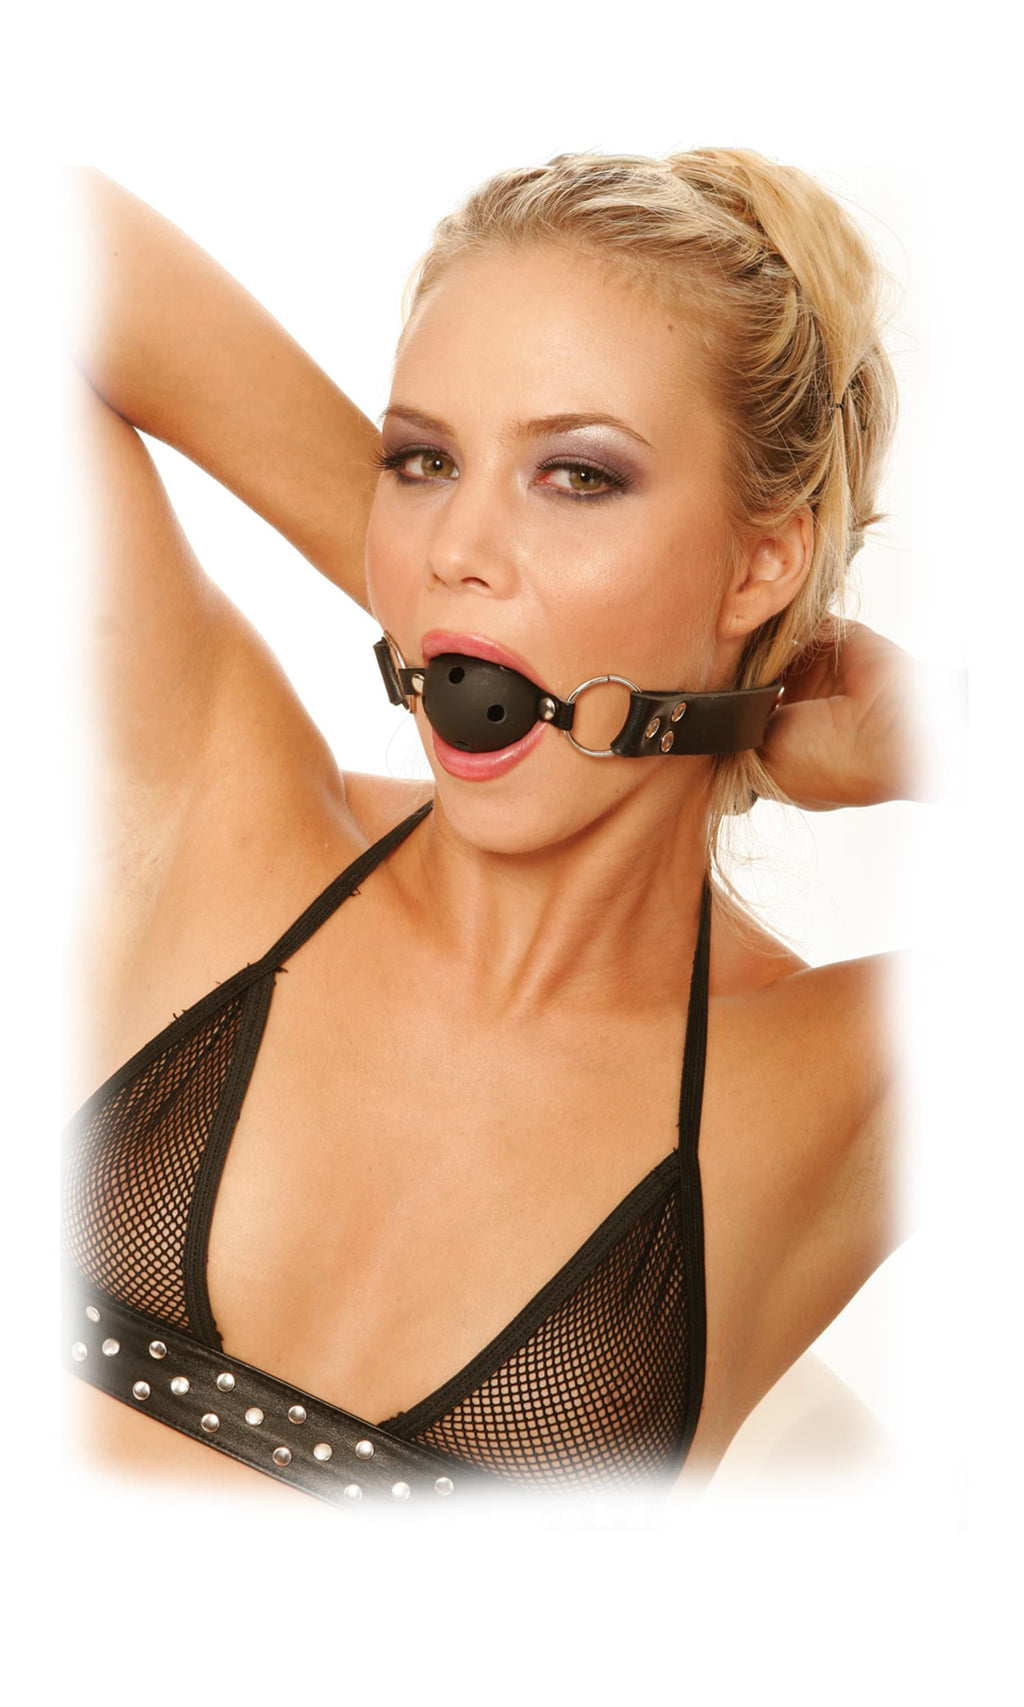 Fetish Breathable Ball Gag | Ladies Sex Toys, Sex Toys For Women, Sex Toys, Adult Toys | My Sex Shop